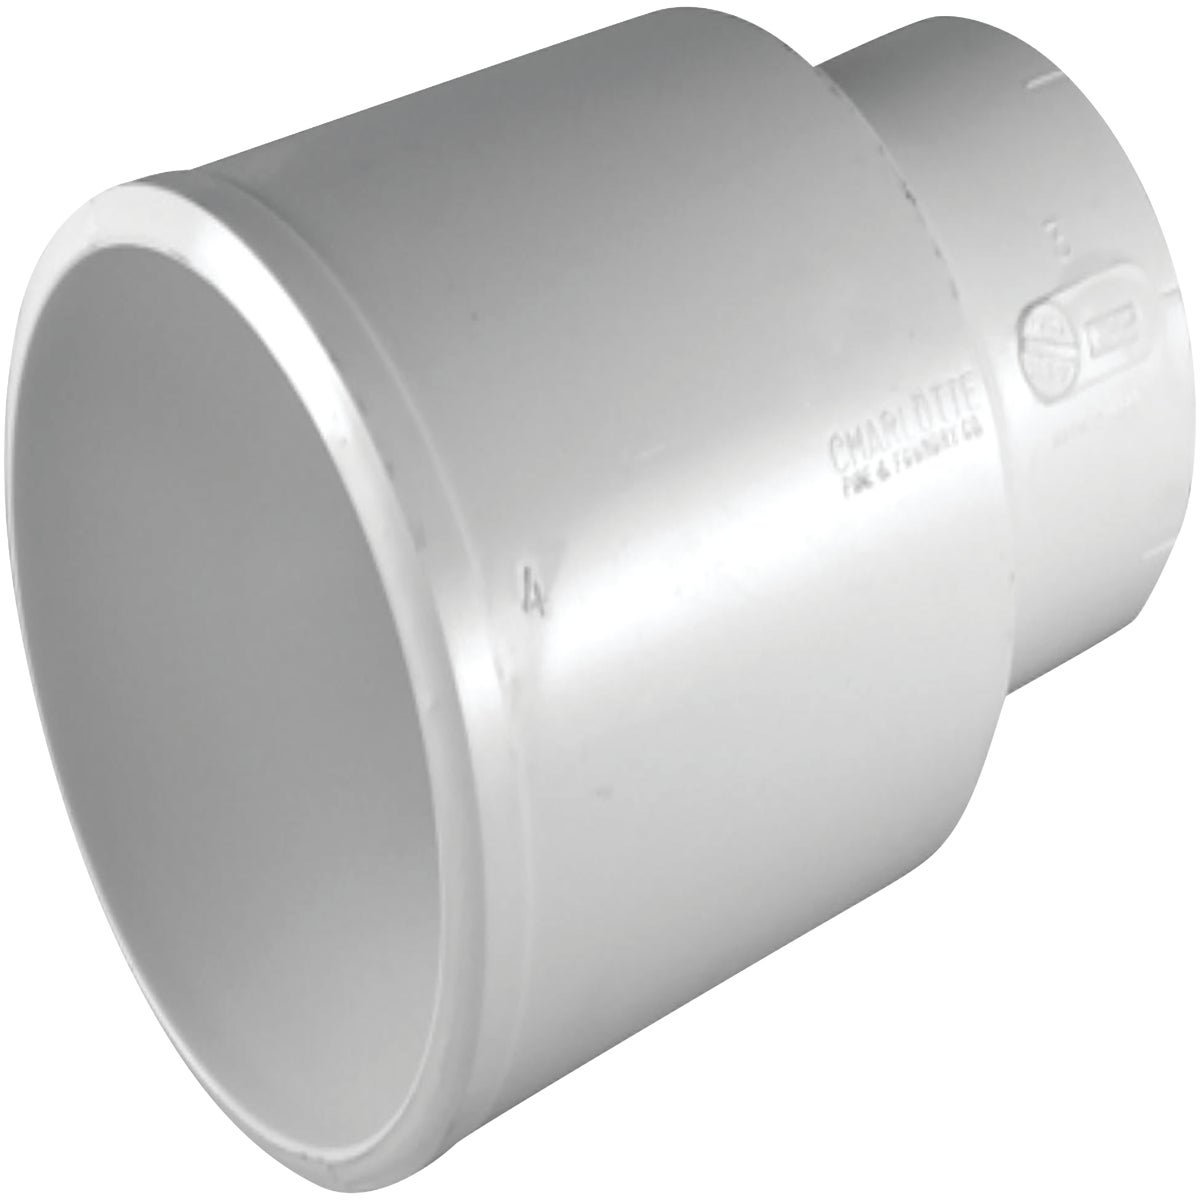 "4""SCH30 ADAPTER COUPLING - 61543 by Genova Inc"